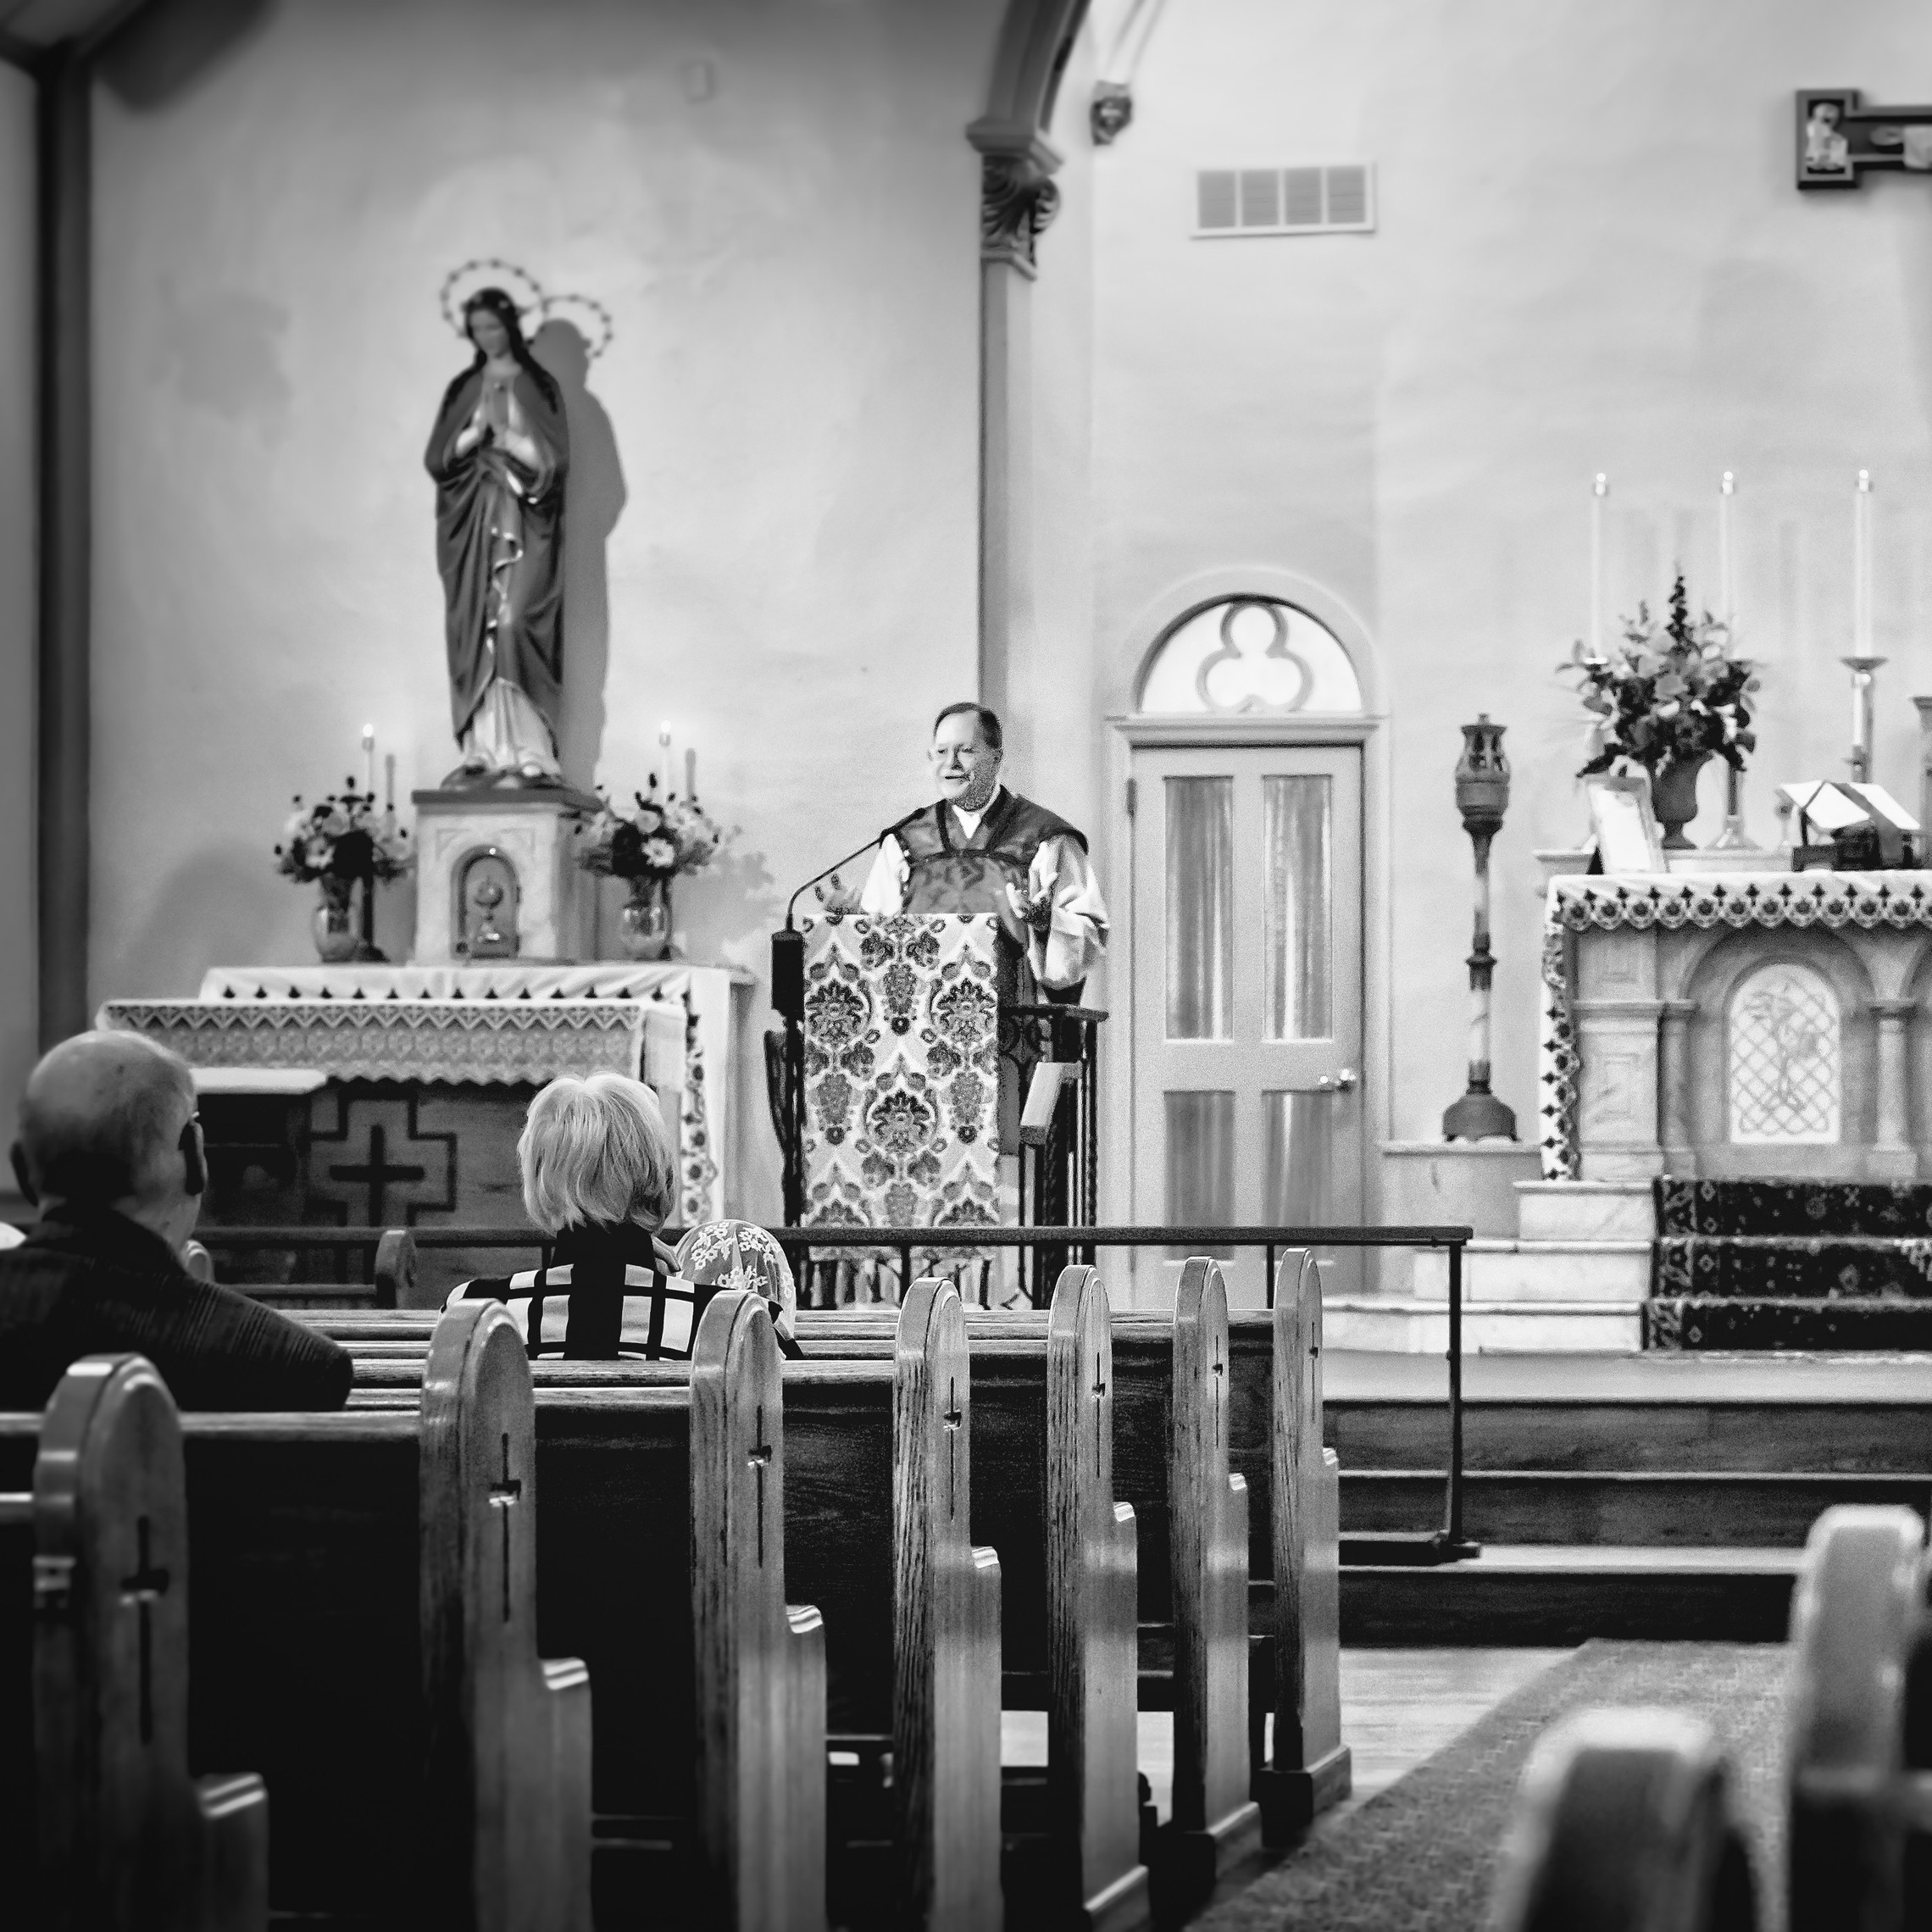 Latinmass St.patricks Fr. Klein Sermon Smile Bw 2 1